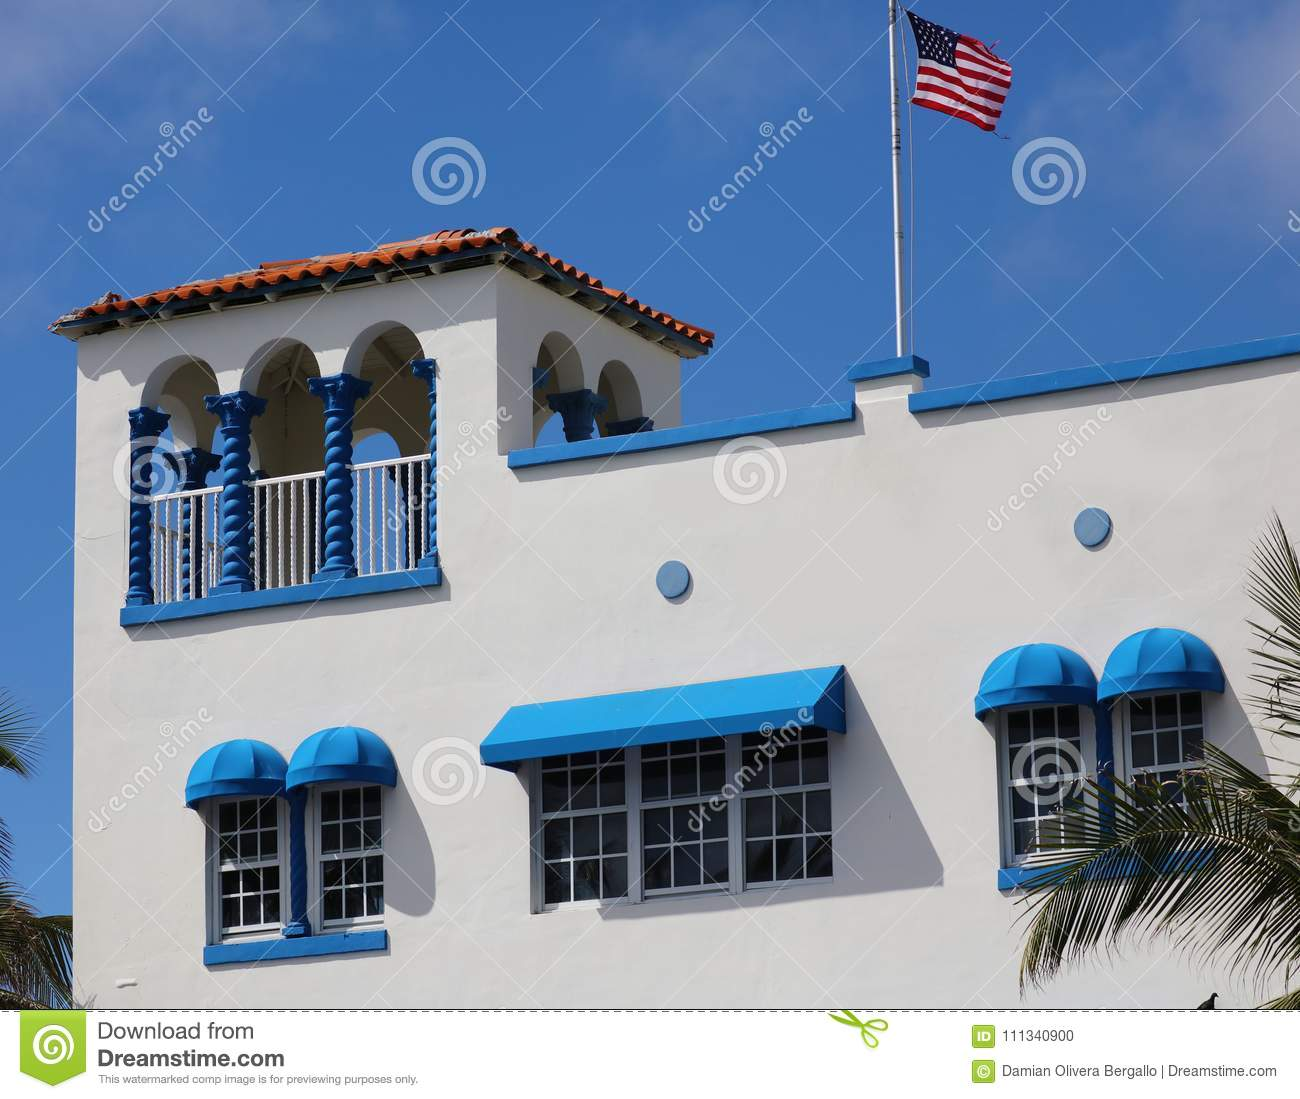 Art deco Colorful white and blue windows in the streets of Miami beach south Florida houses Ocean drive